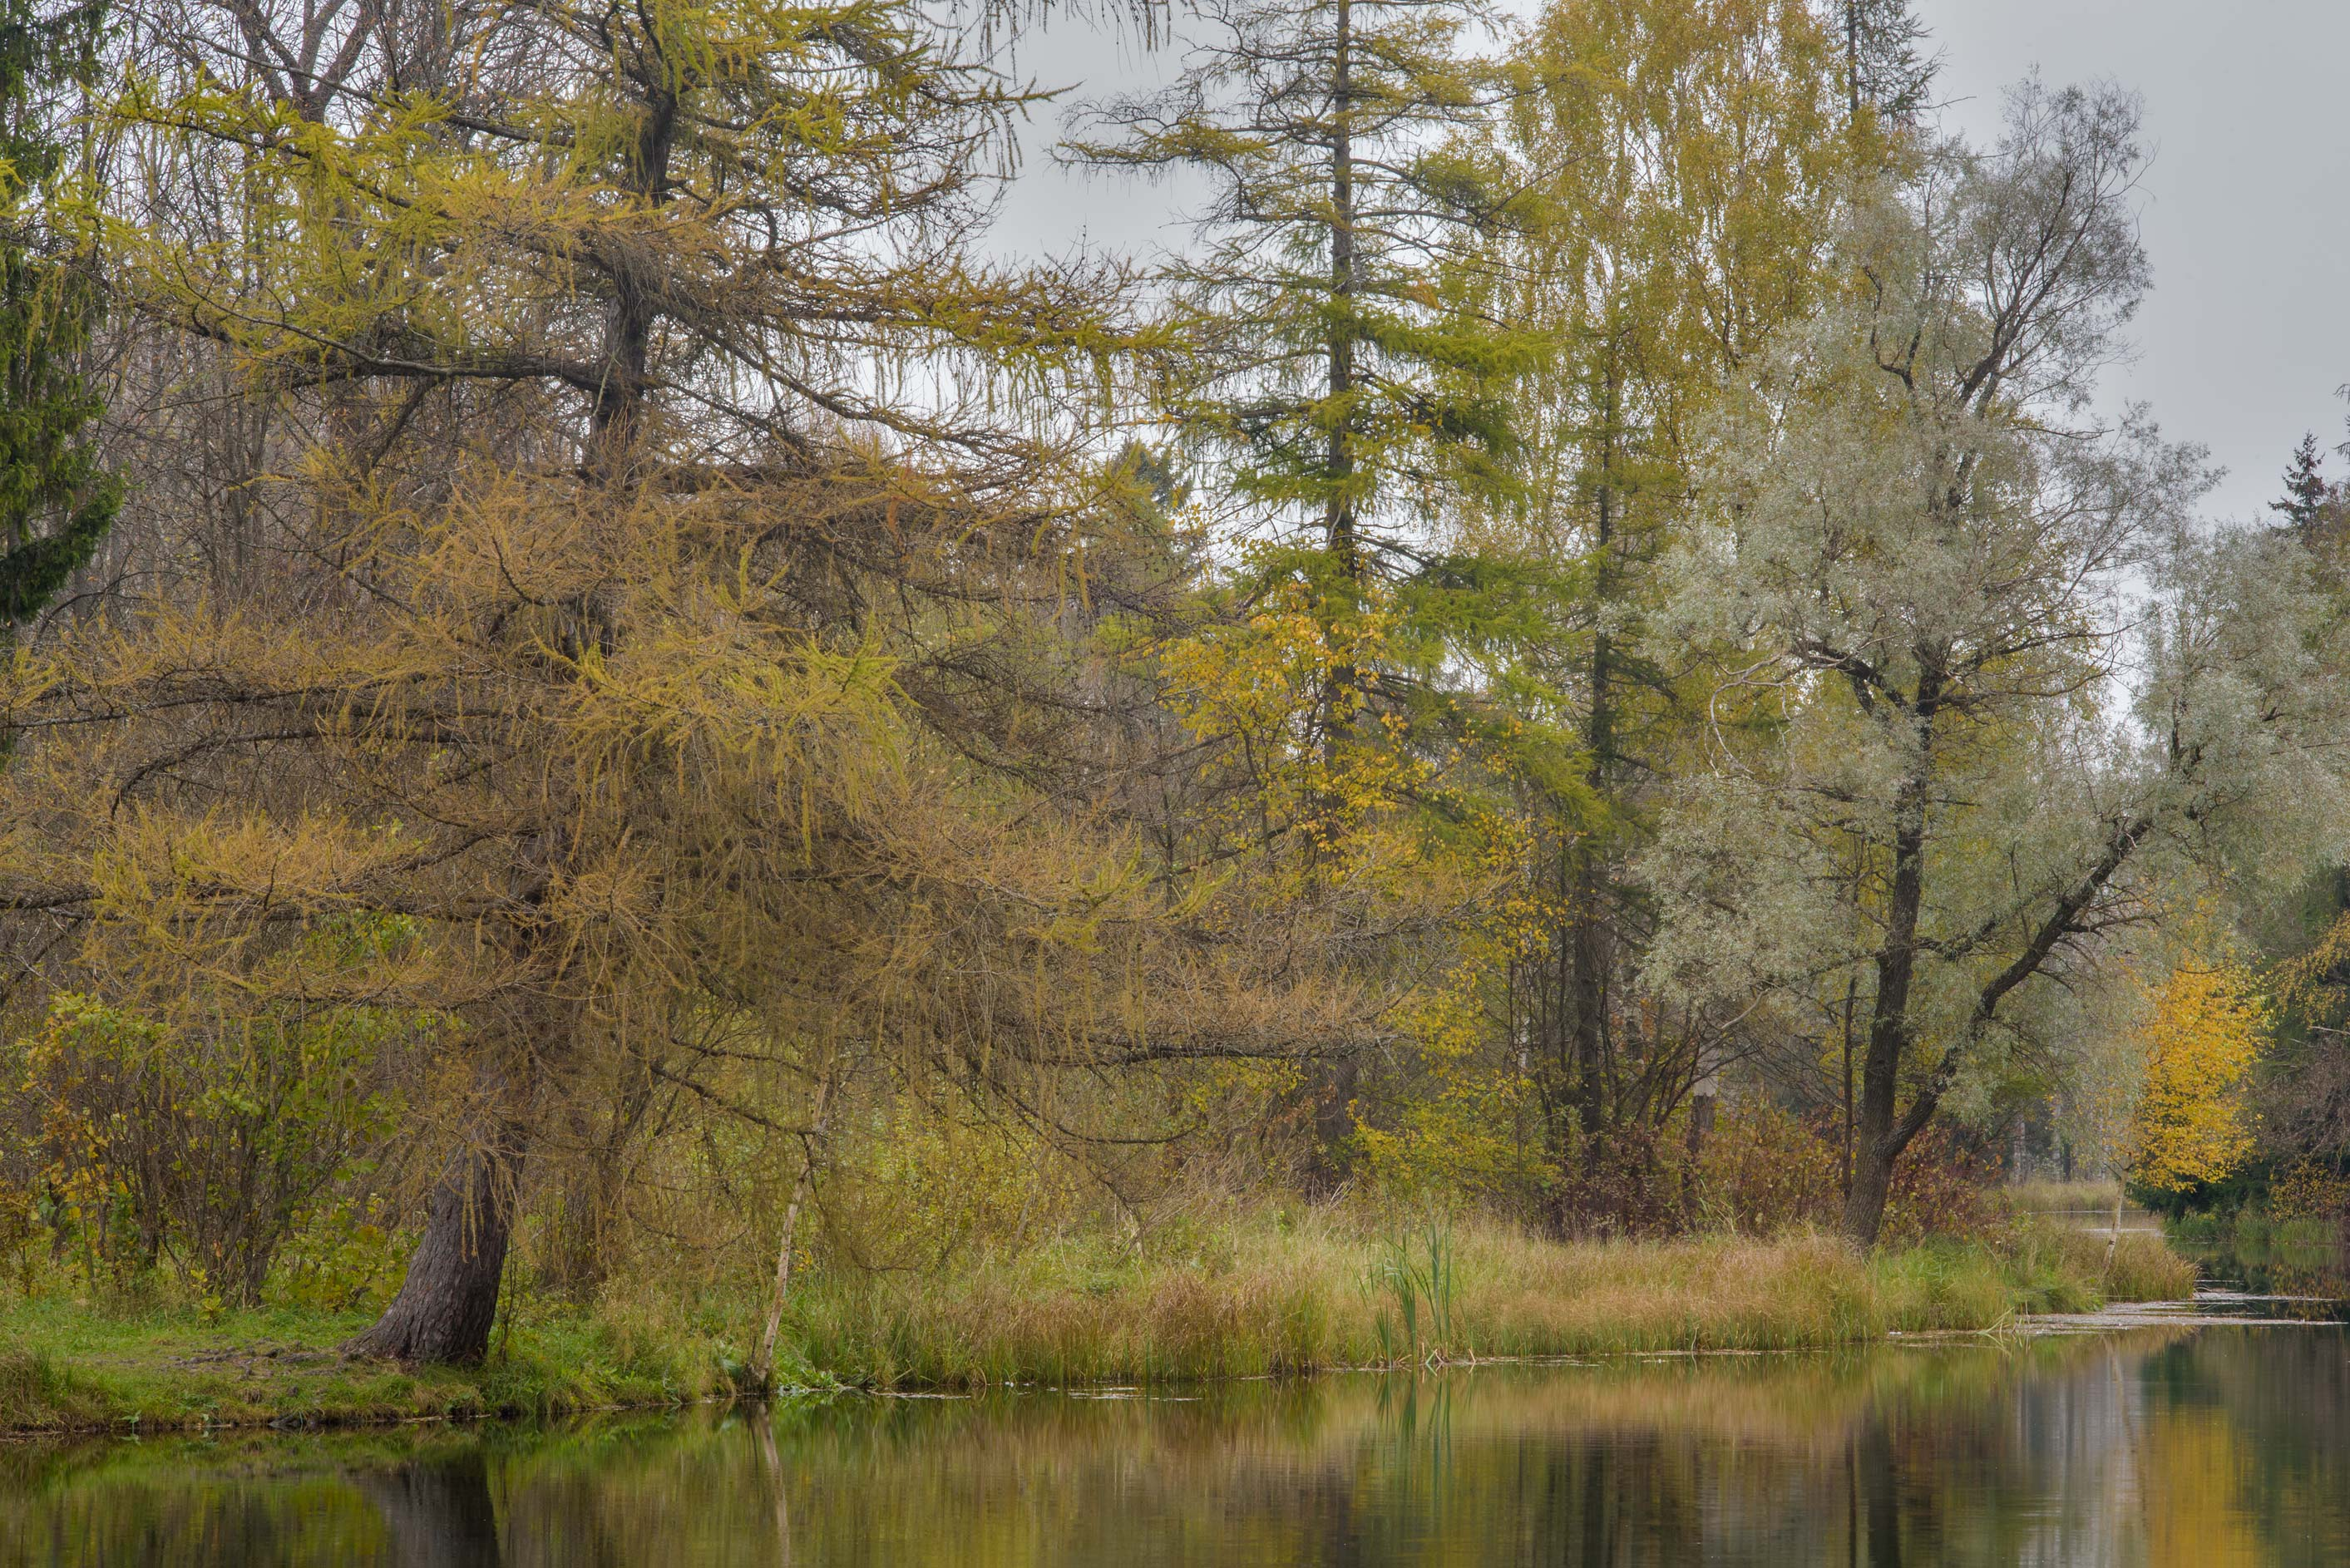 Trees on Beloe Lake in Gatchina Park. Gatchina, a suburb of St.Petersburg, Russia